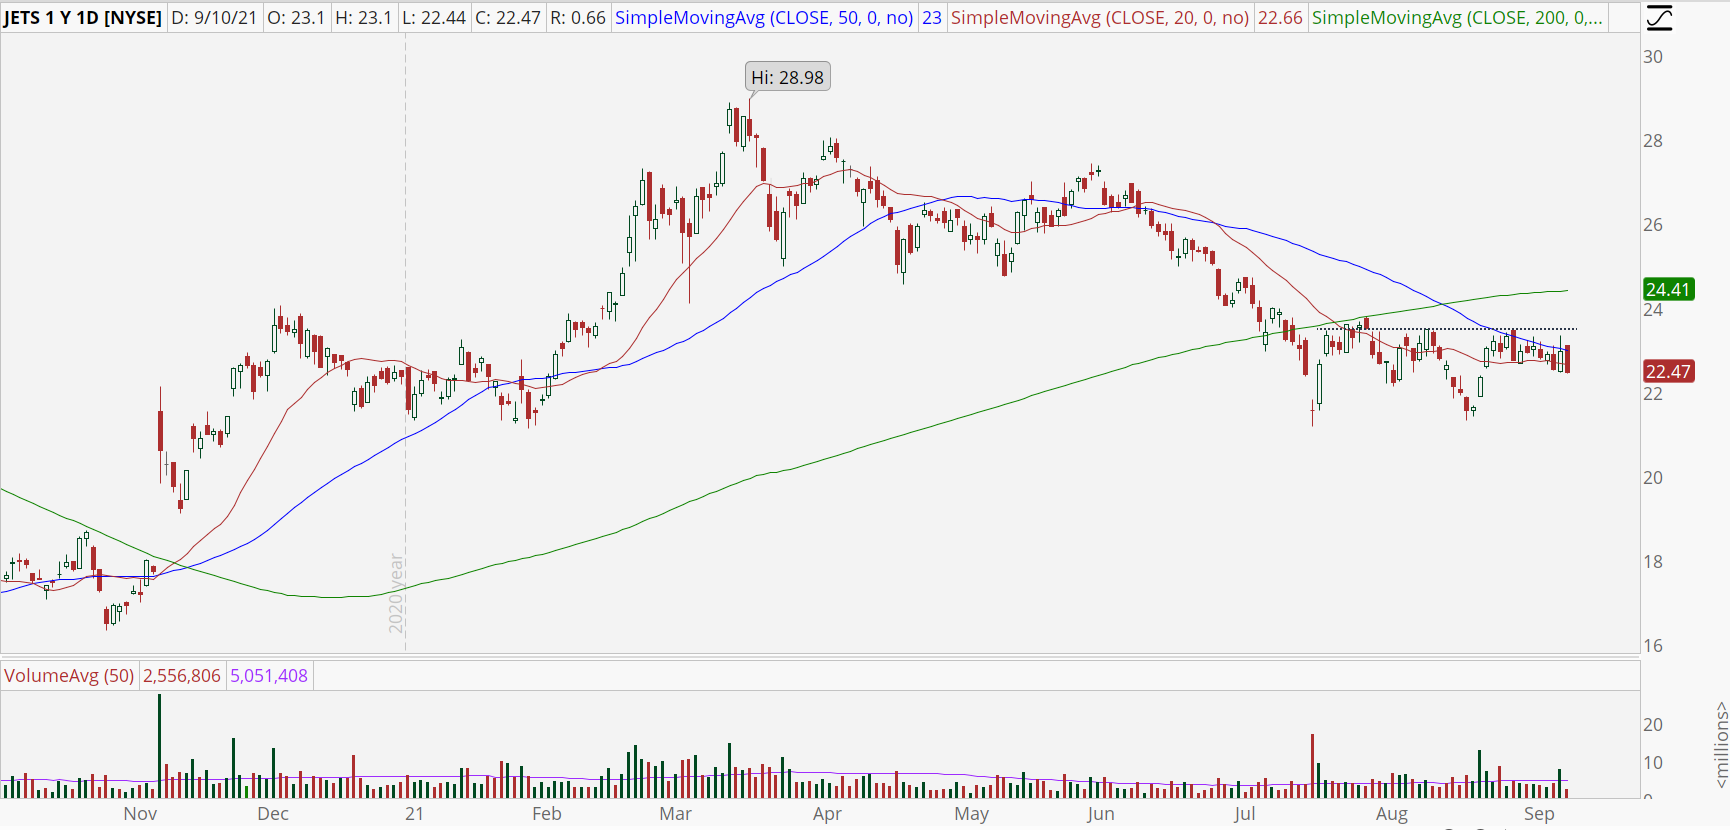 Global Jets ETF (JETS) stock chart with potential bottom